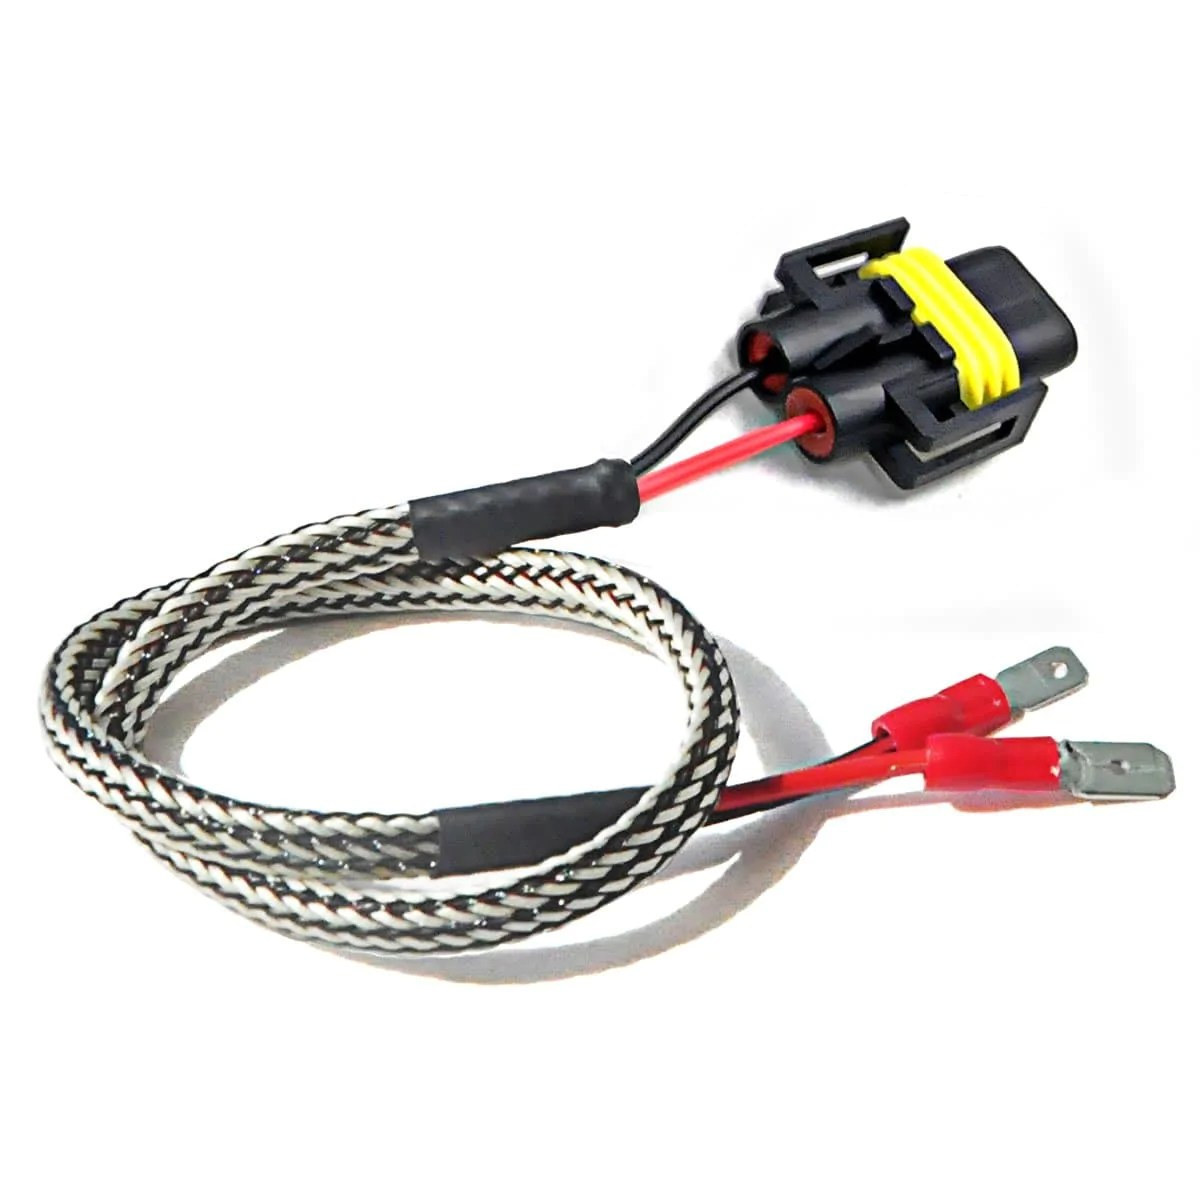 h11b h11 led headlight plug extension cable wiring harness [ 1200 x 1200 Pixel ]